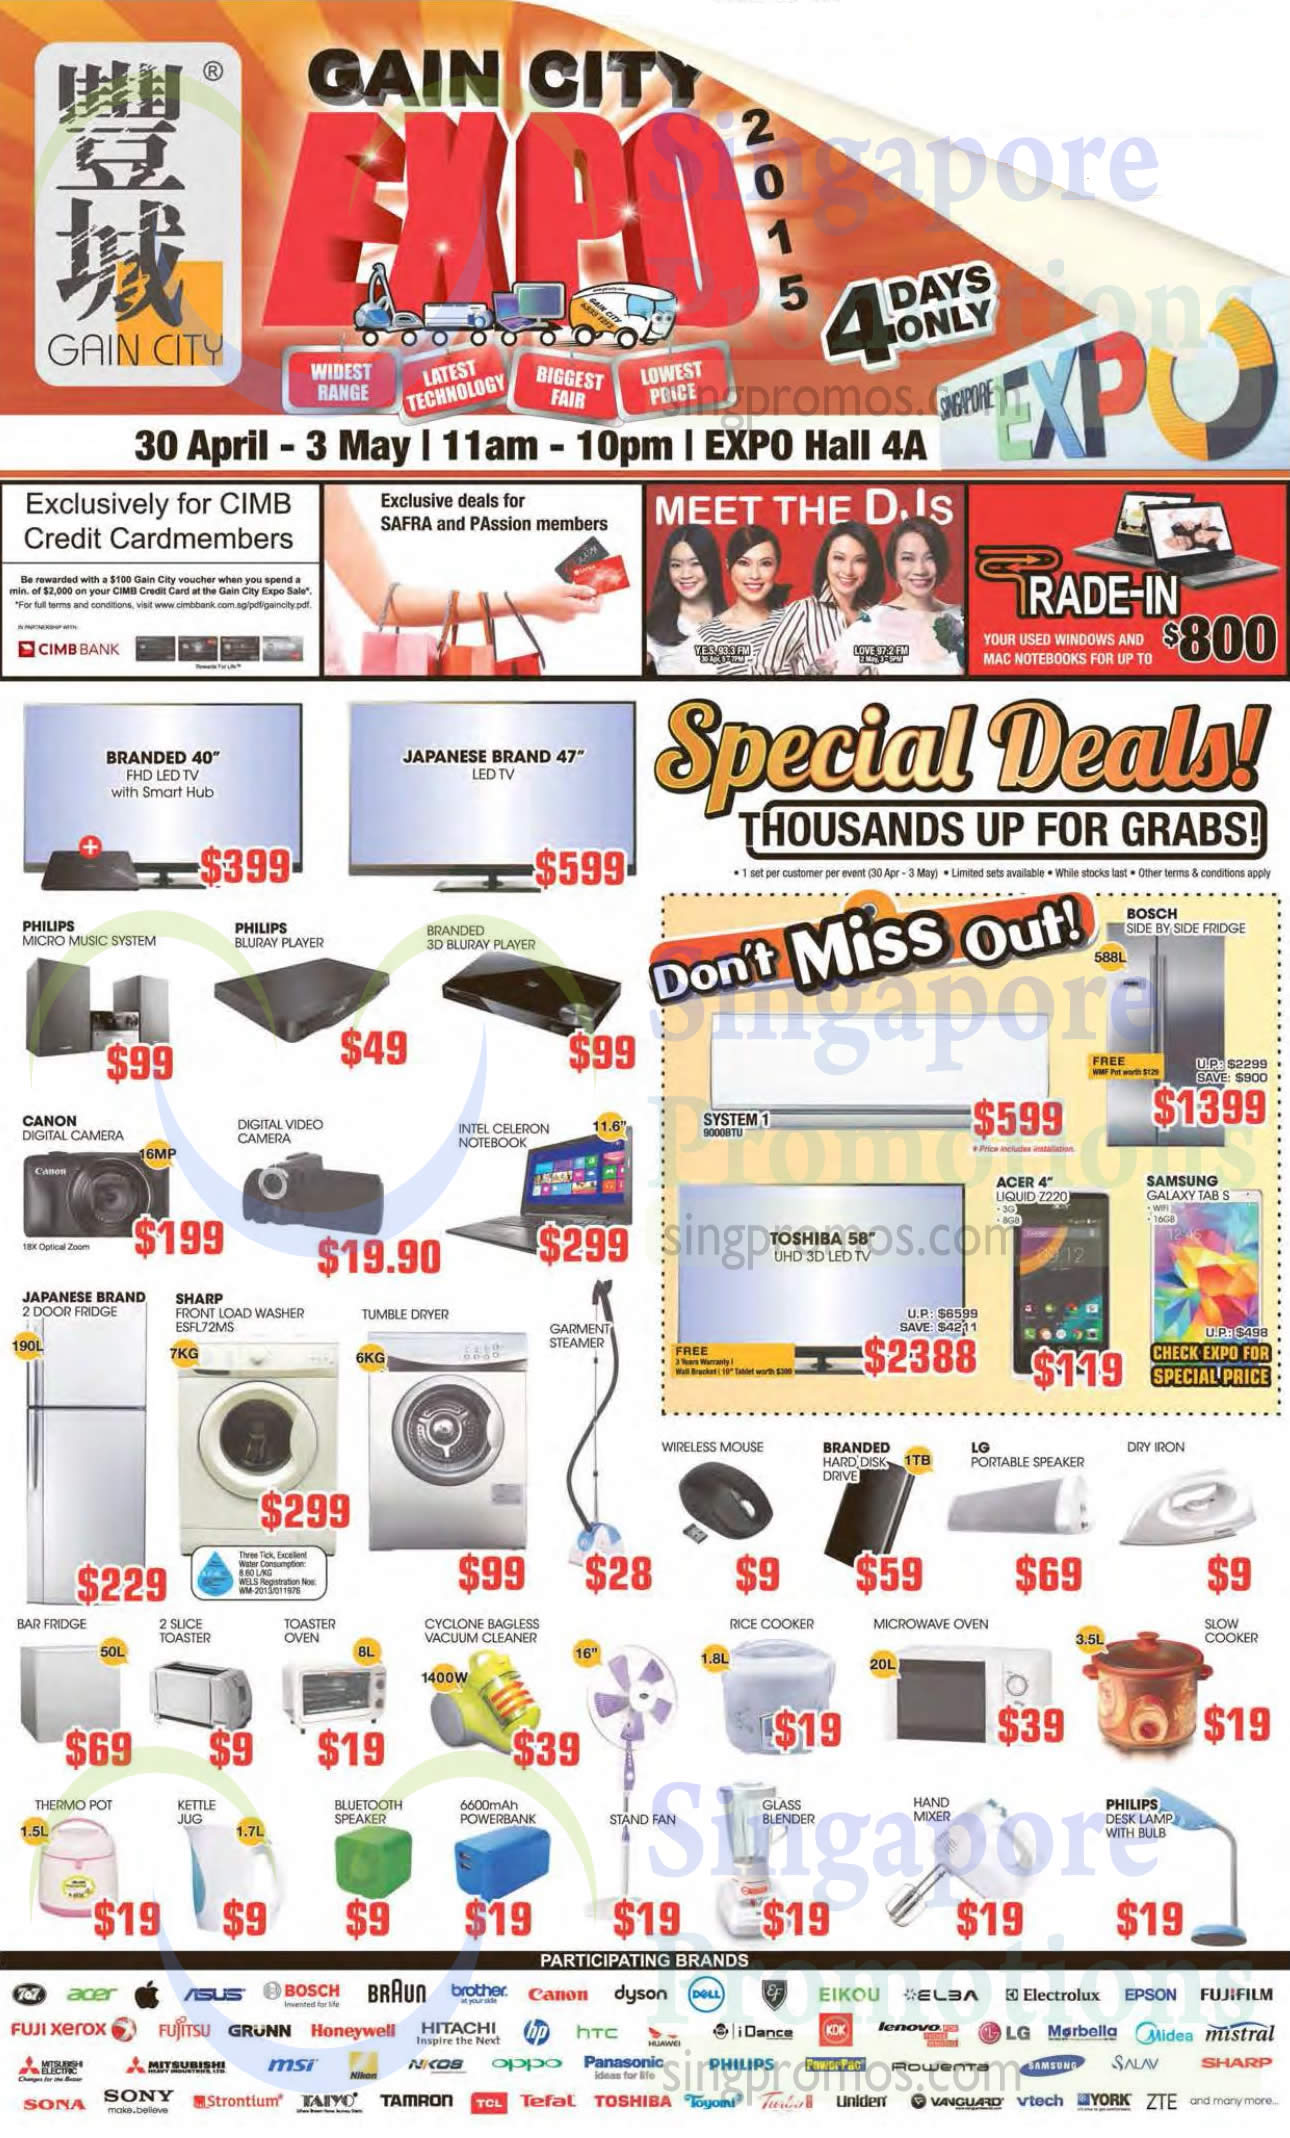 30 Apr Special Deals, CIMB Cardmember Offers, Meet DJs, Trade In Laptops, Participating Brands